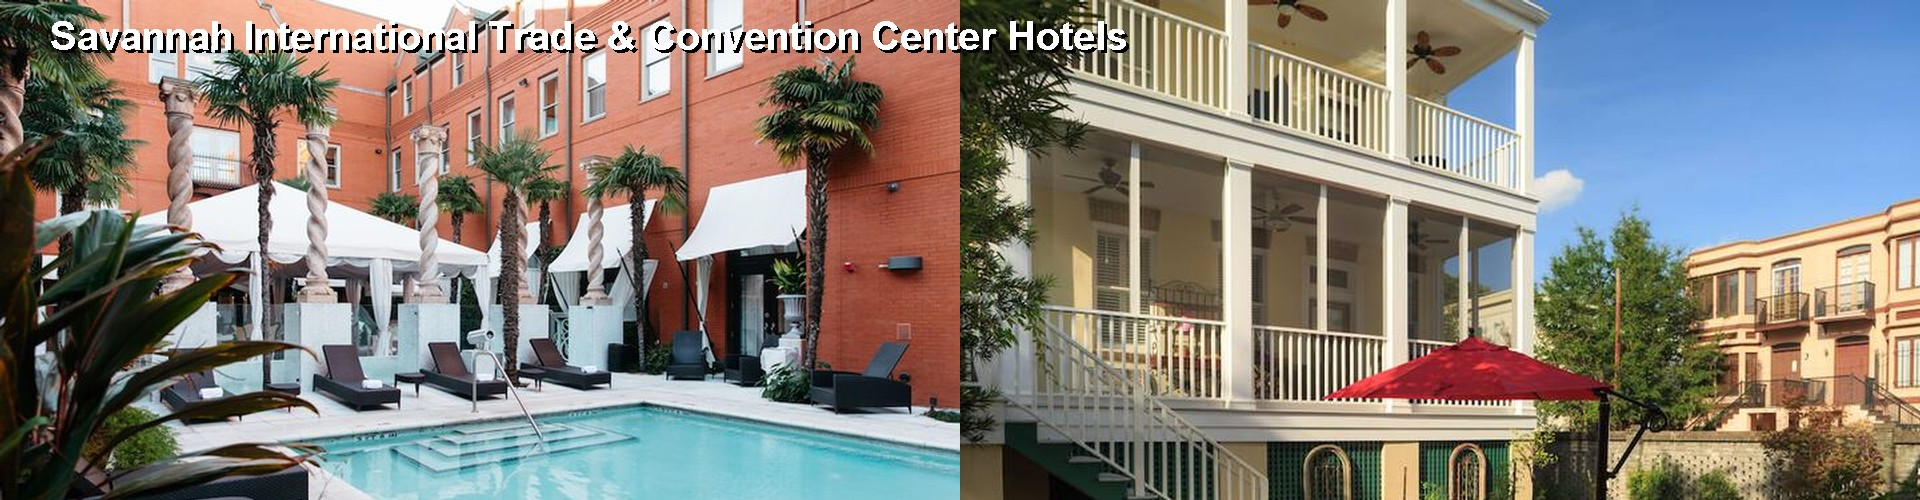 5 Best Hotels Near Savannah International Trade Convention Center